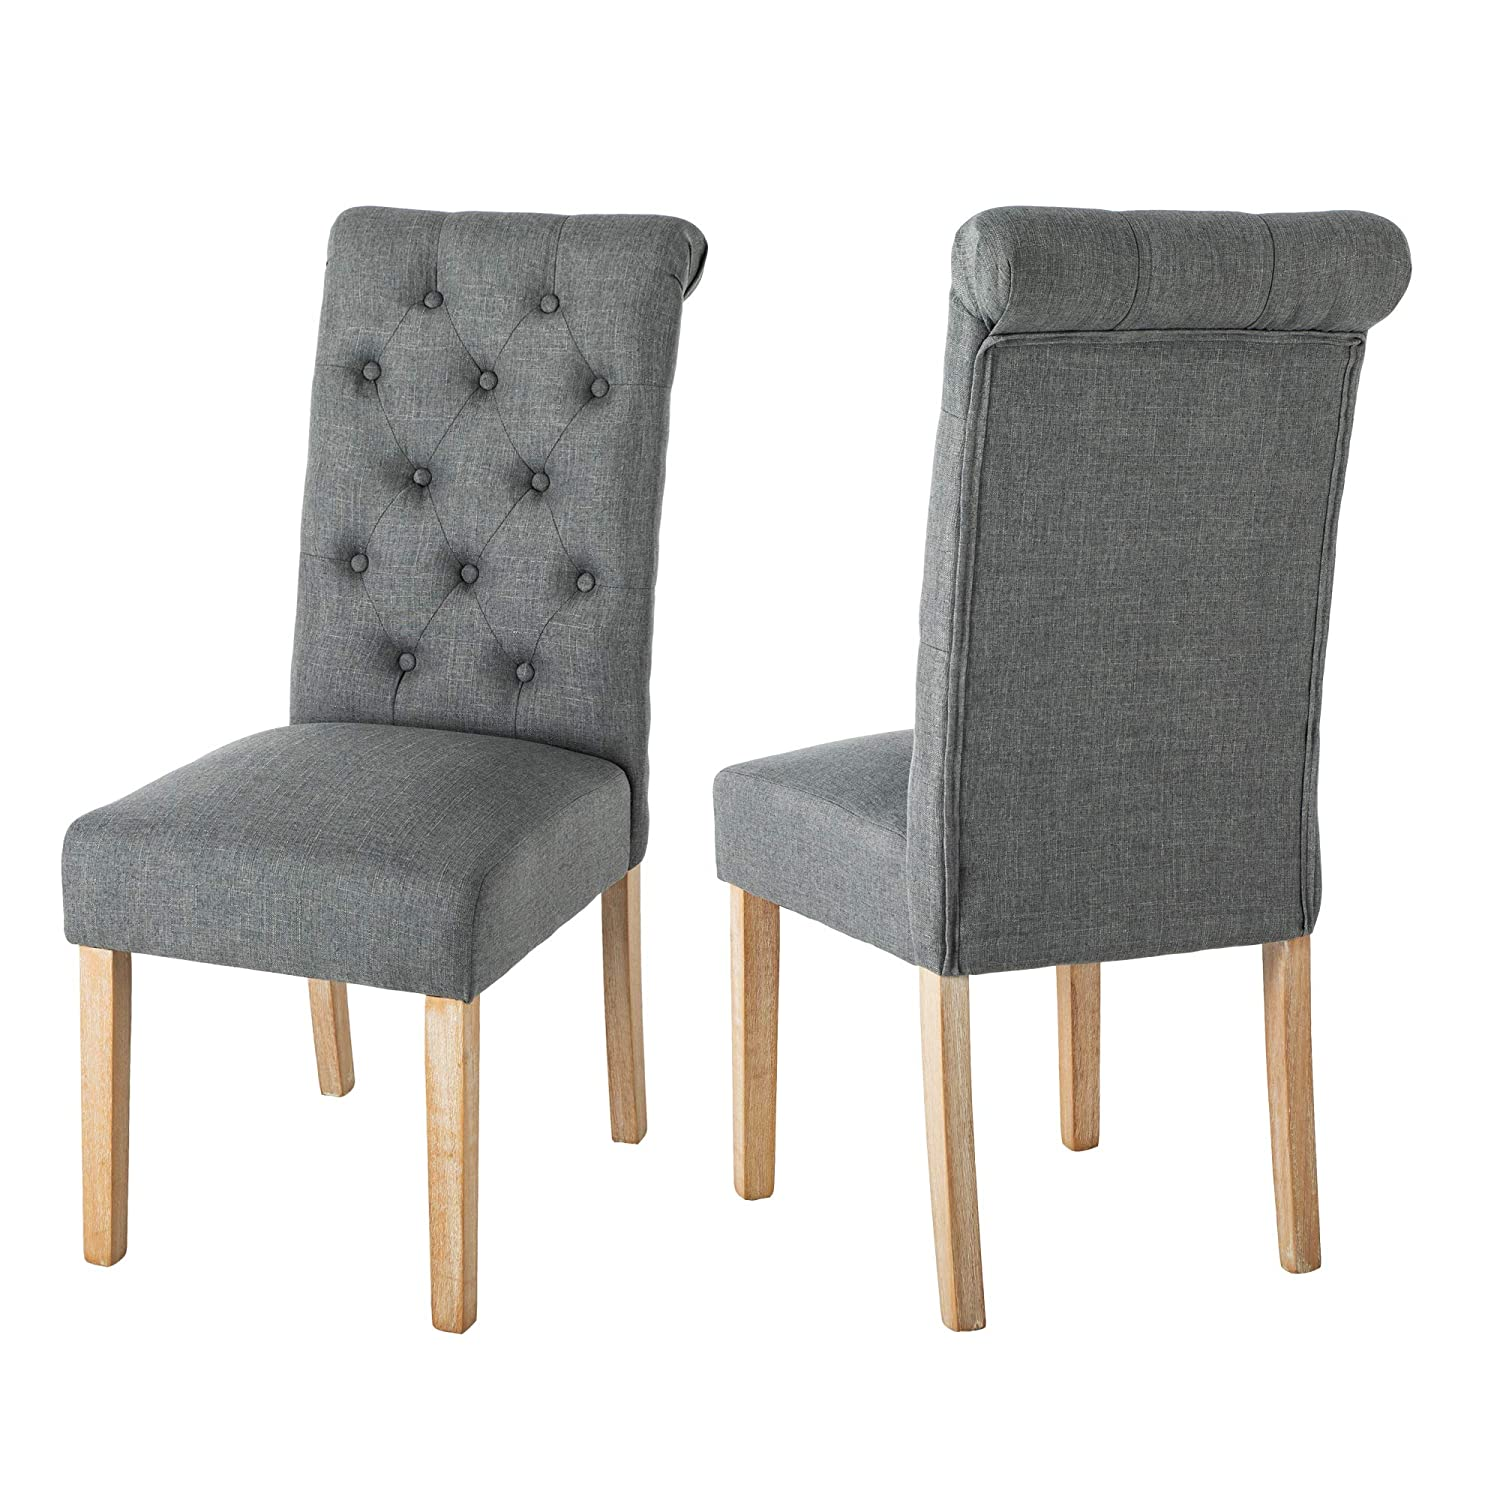 LSSBOUGHT Button-Tufted Classic Accent Dining Chairs with Solid Wood Legs, Set of 2 Gray